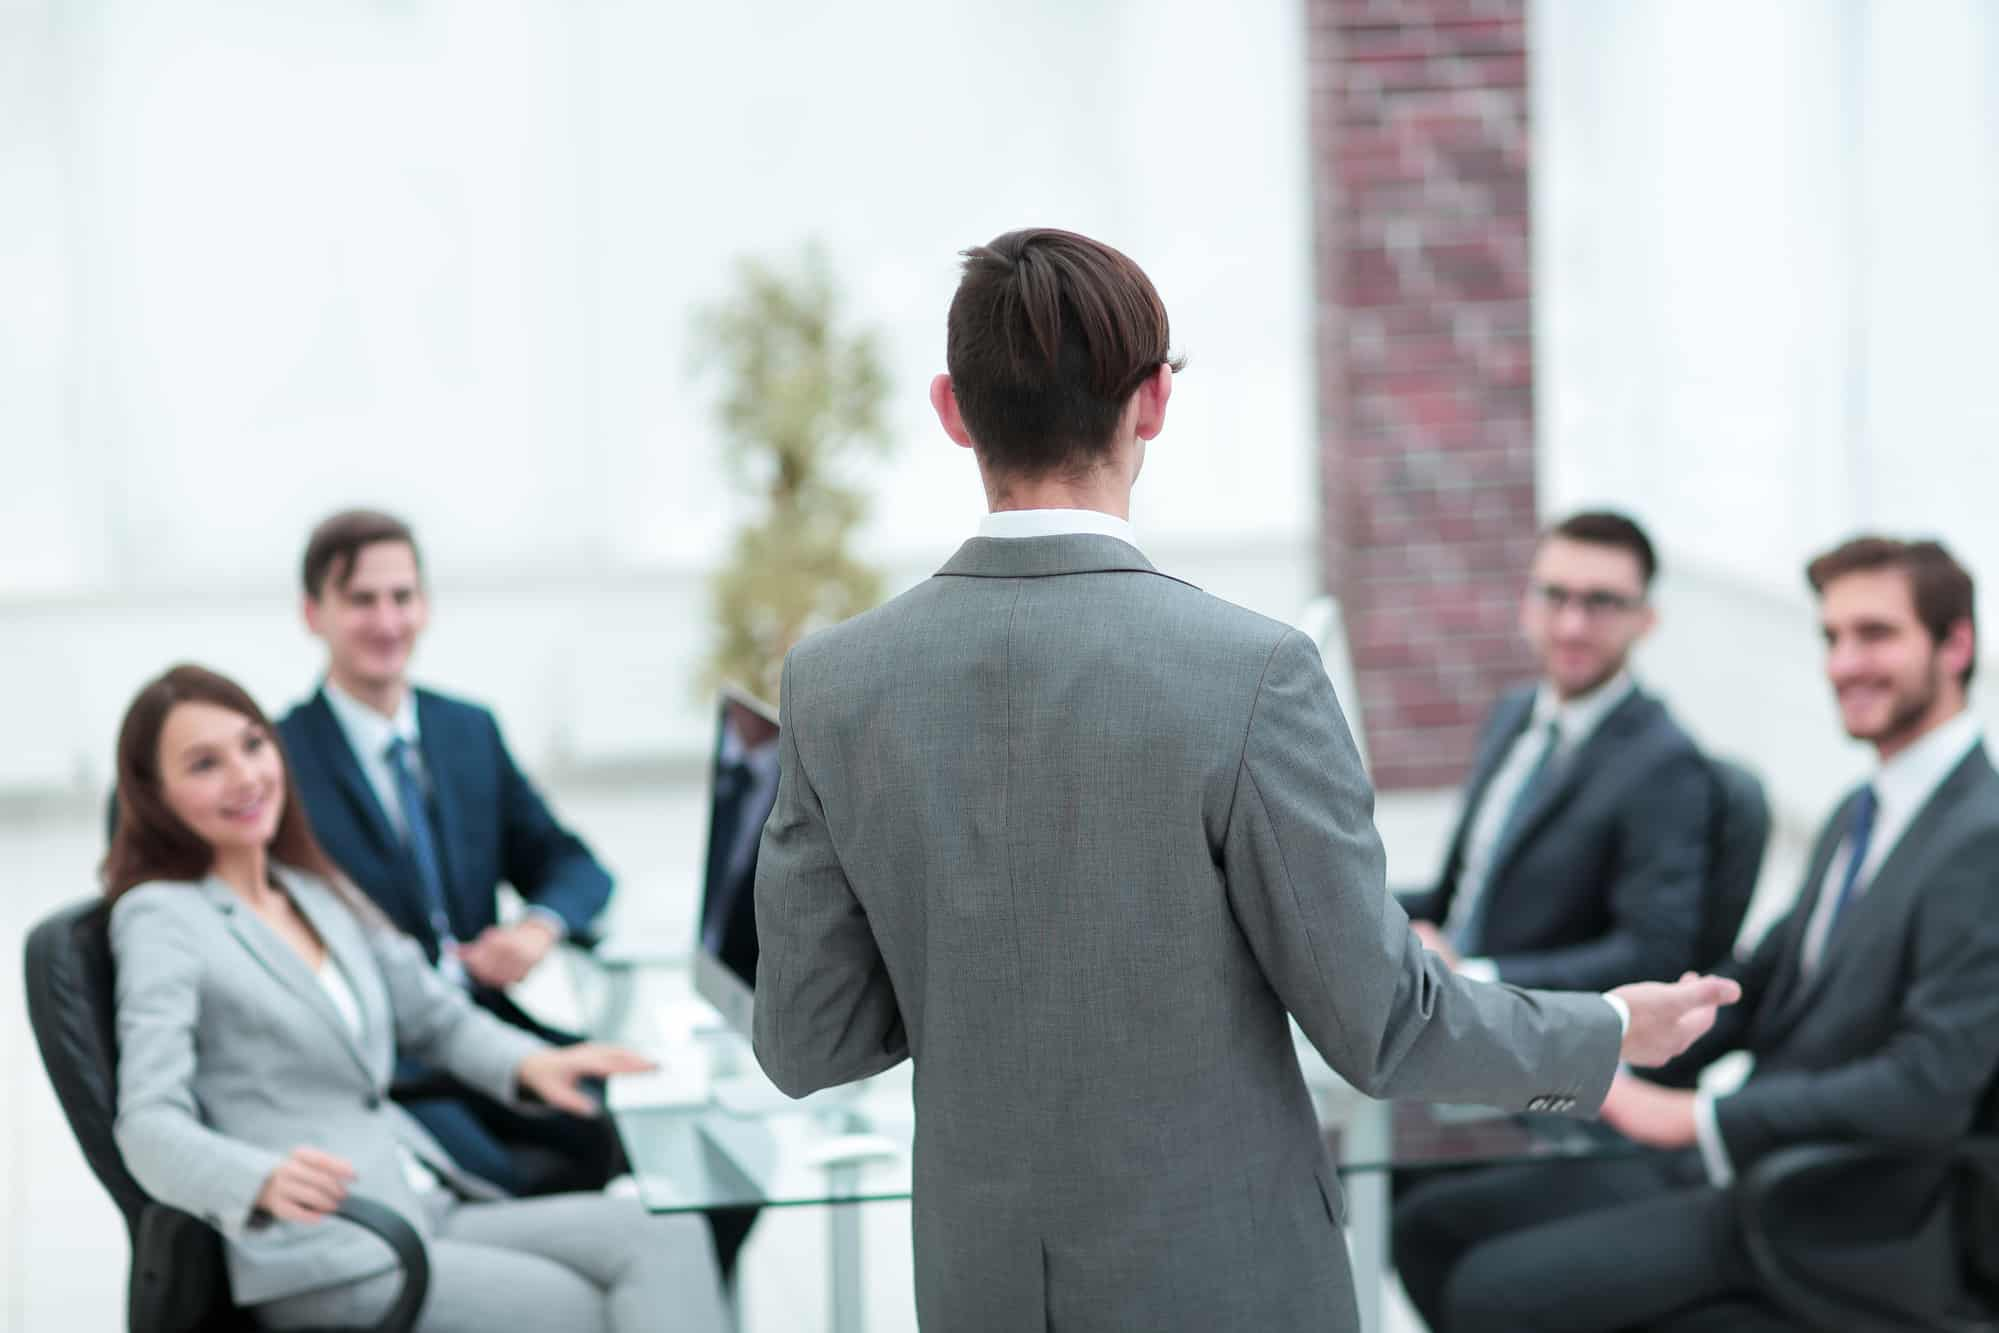 When the heat is on: 4 types of leader under pressure